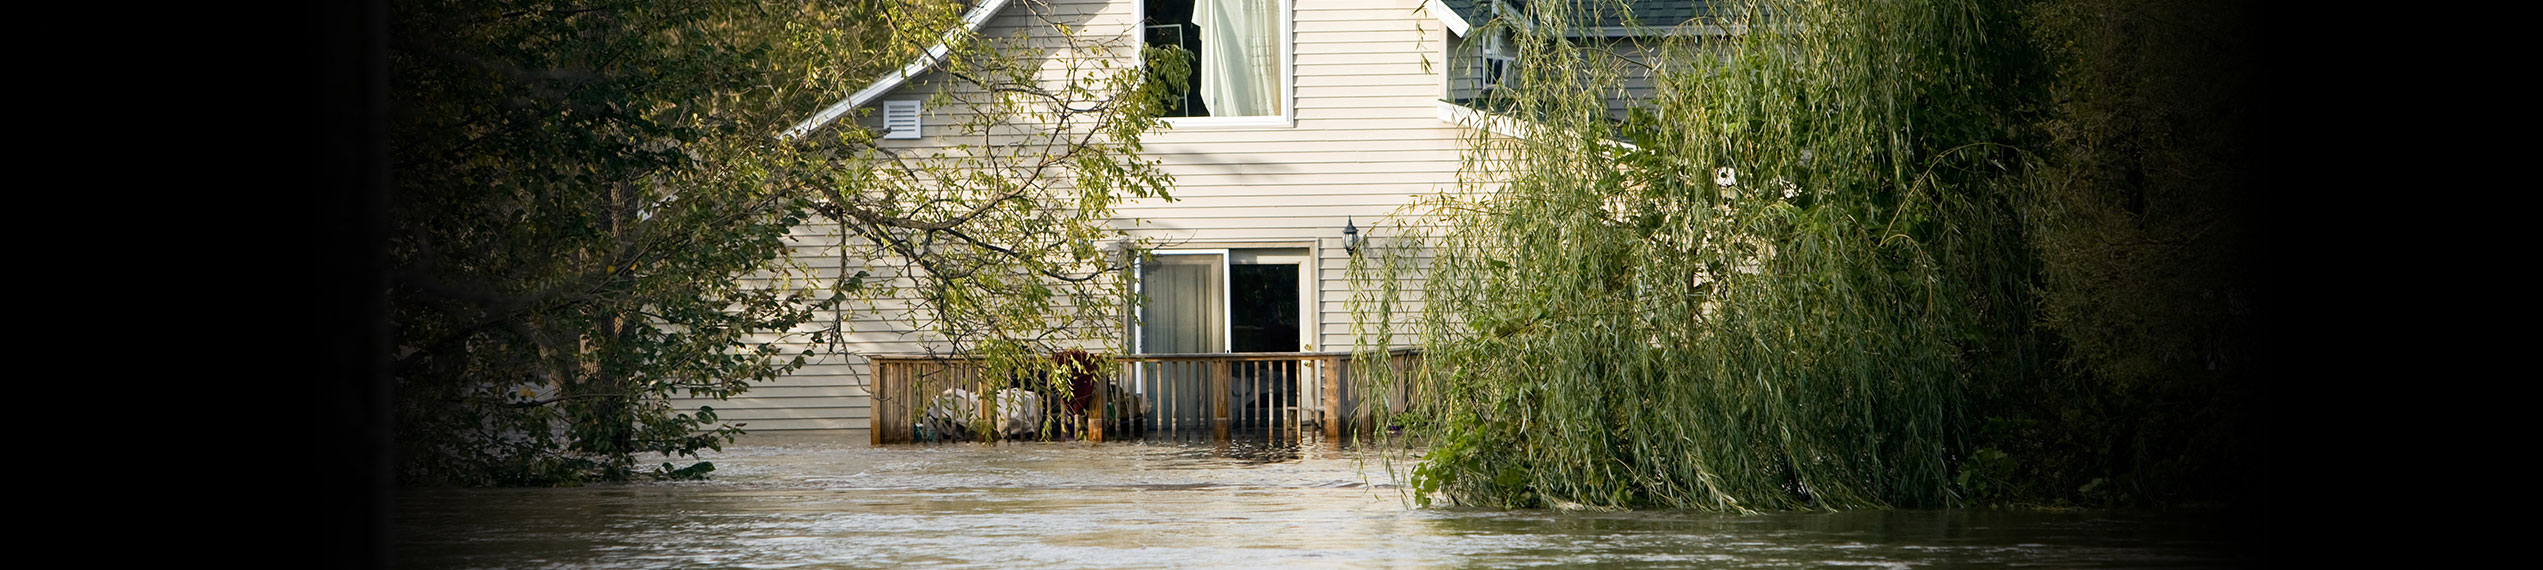 Water & Flood Damage Removal Services in Paul Davis Emergency Services of Delaware County OH